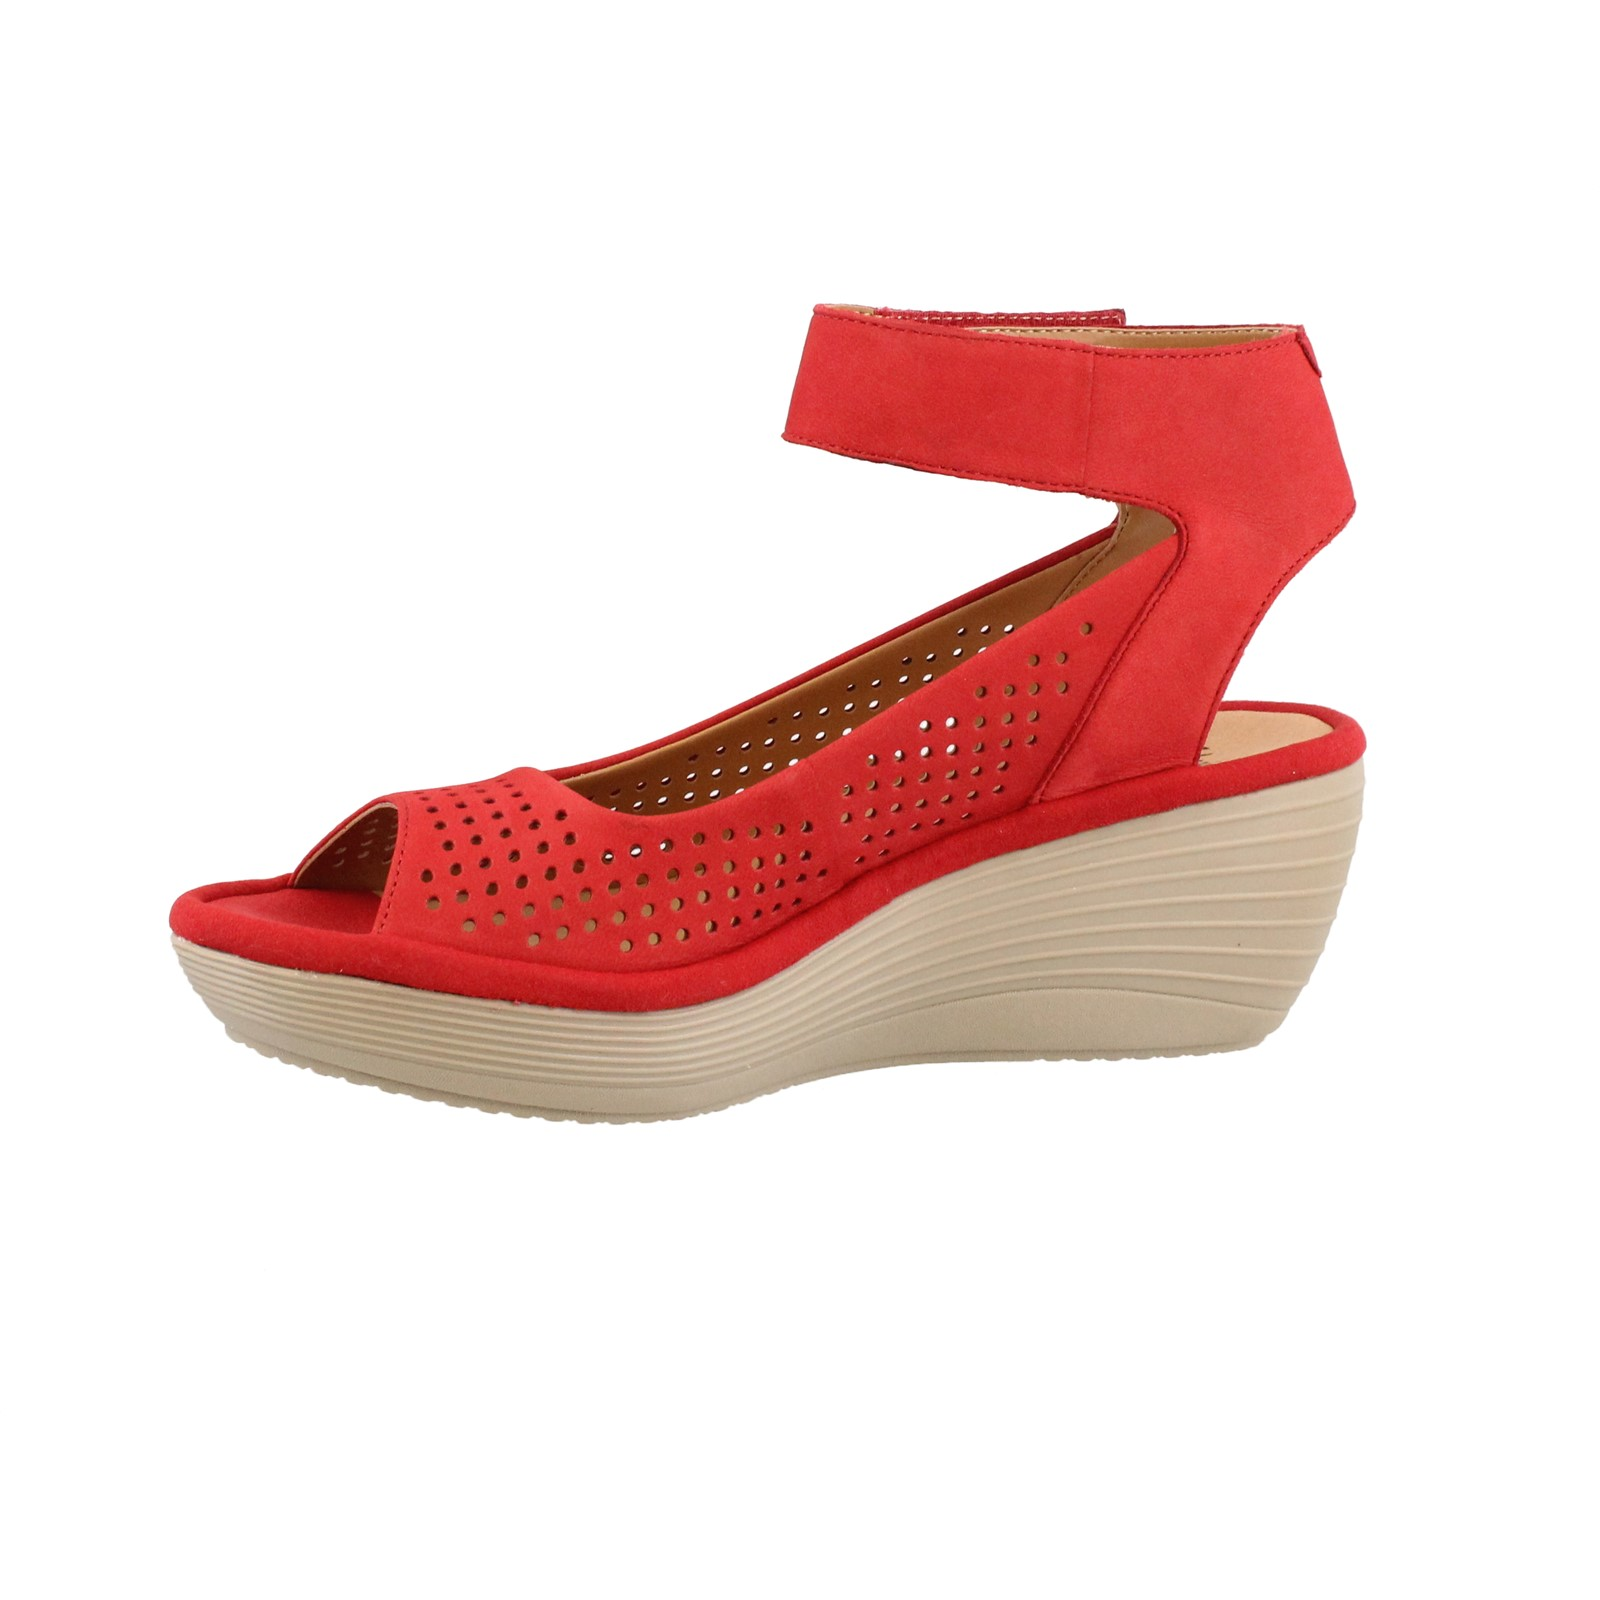 261ebcd2f Next. add to favorites. Women's Clarks, Reedly Salene Mid Wedge Sandals